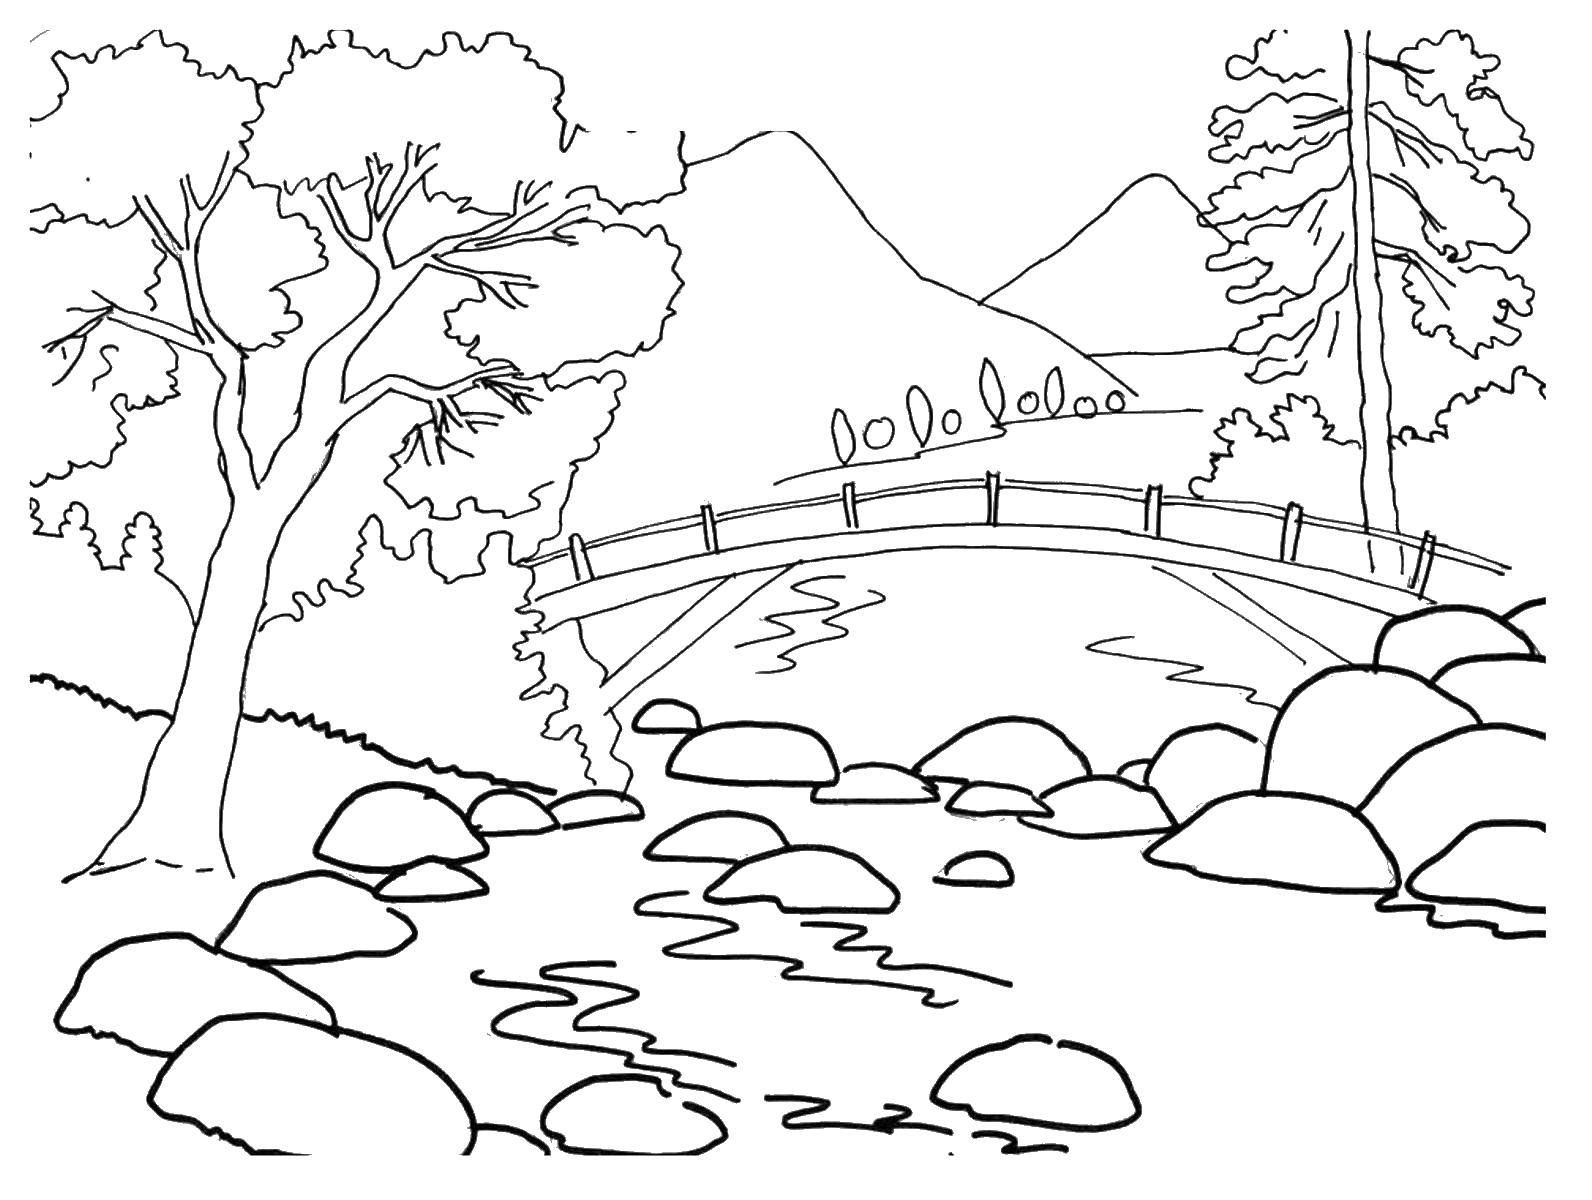 Coloring The bridge over the river and the tree Download ,bridge, tree, river,.  Print